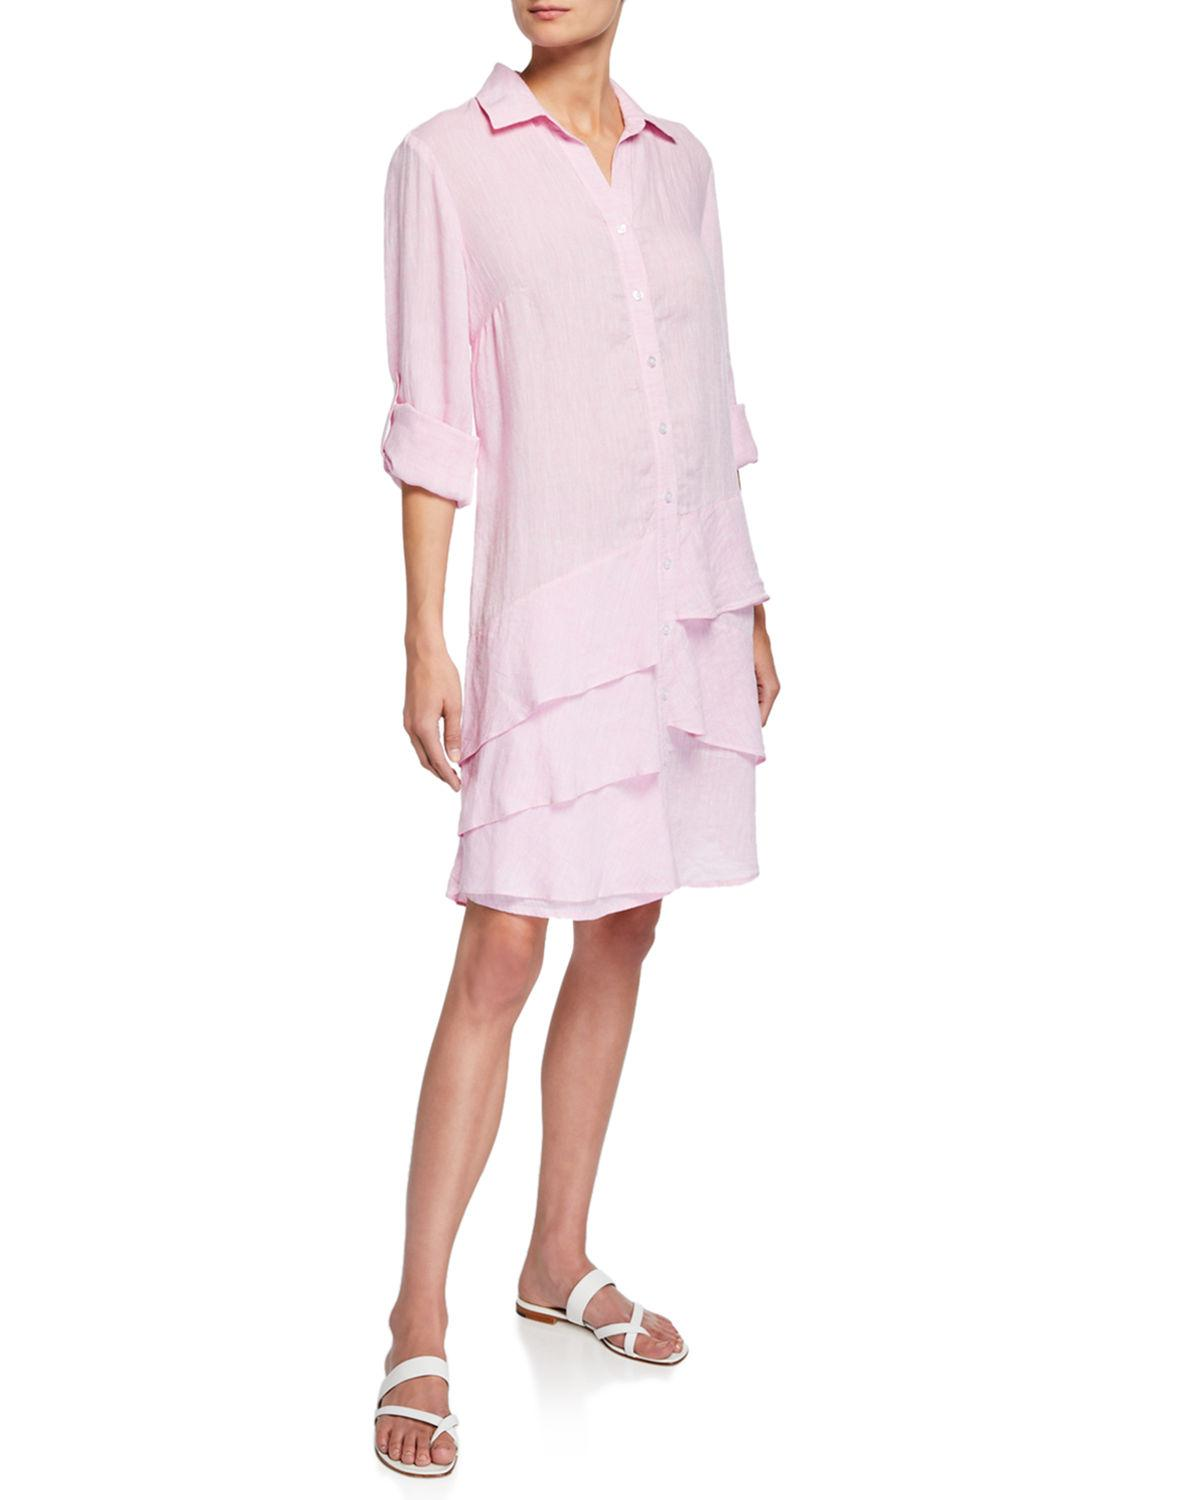 a3bd8965bfd537 Finley Jenna Washed Linen Shirtdress With Tiered Ruffles in Pink ...